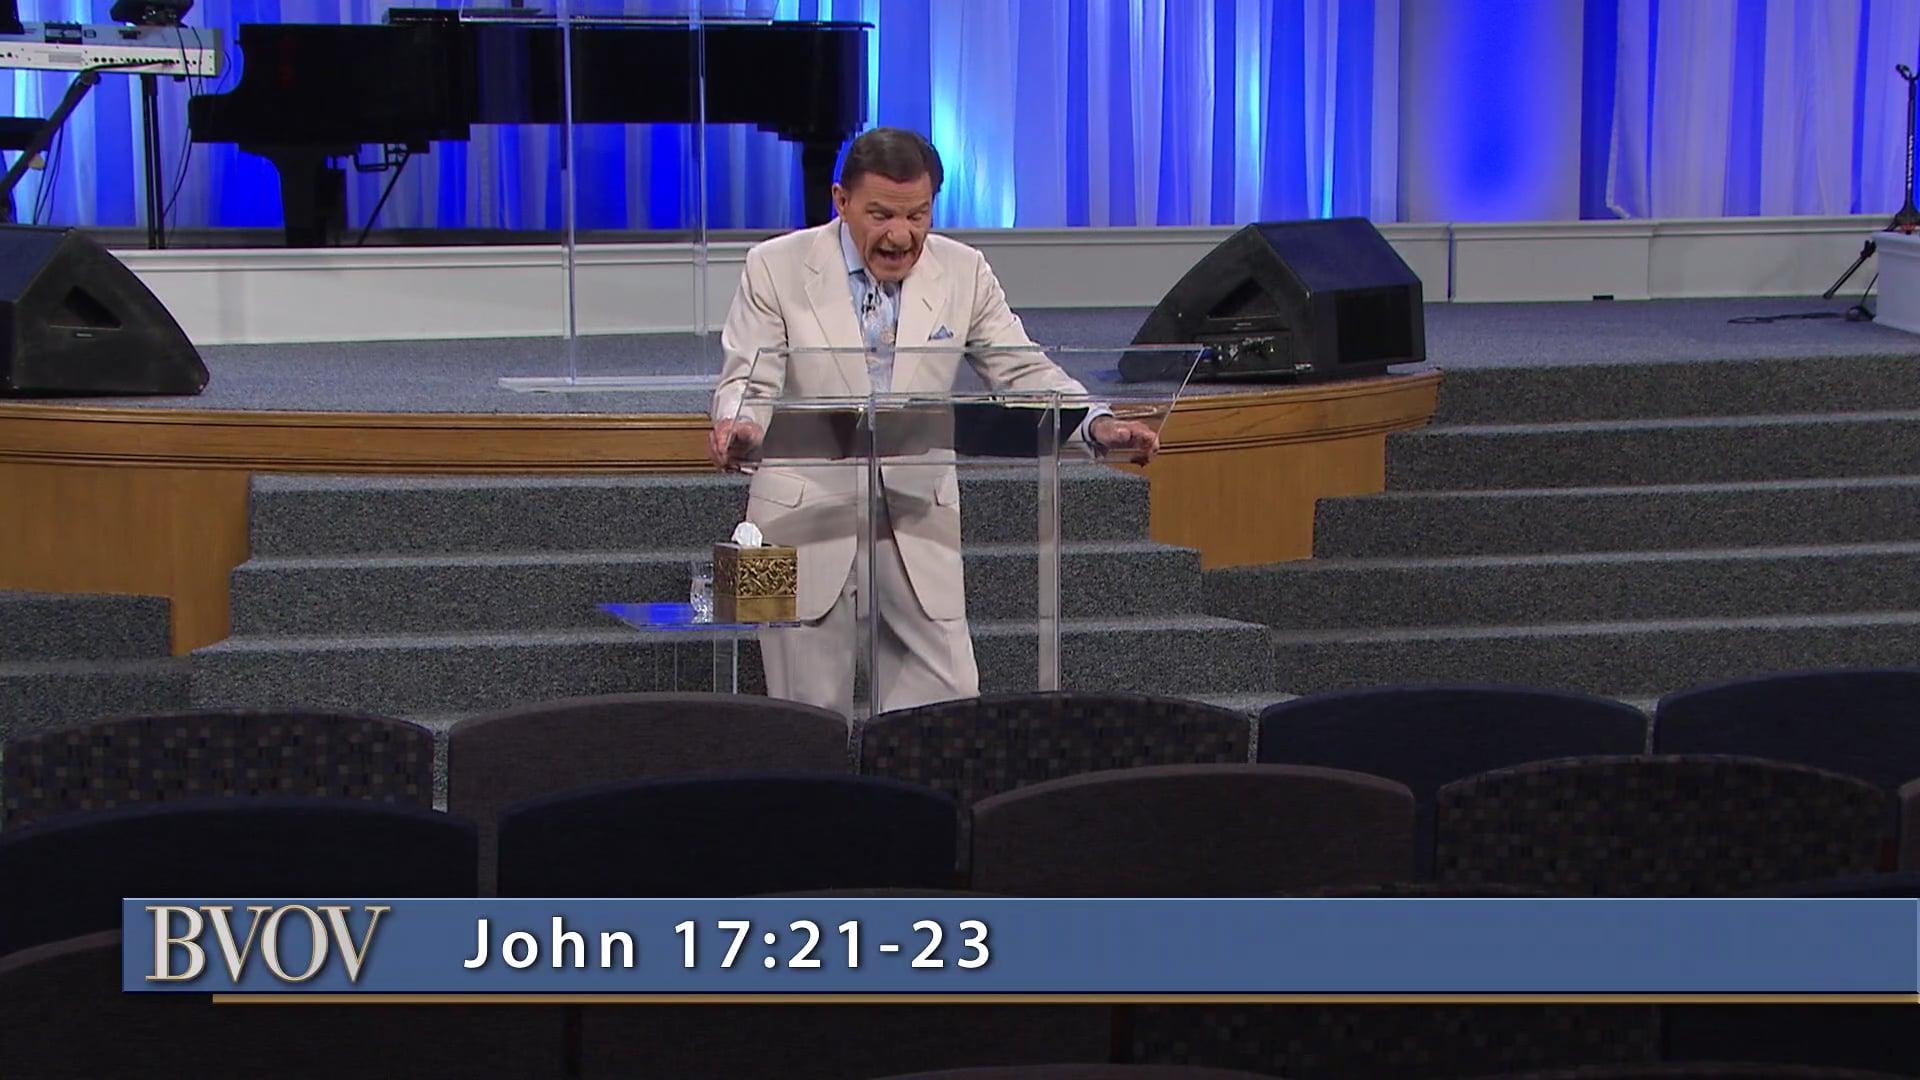 Today on the Believer's Voice of Victory, increase your awareness of God and learn from Kenneth Copeland how to practice His presence.  Let God show you how to be an answer to the world around you, as you spend time in His presence and become more aware of your right standing with Him.